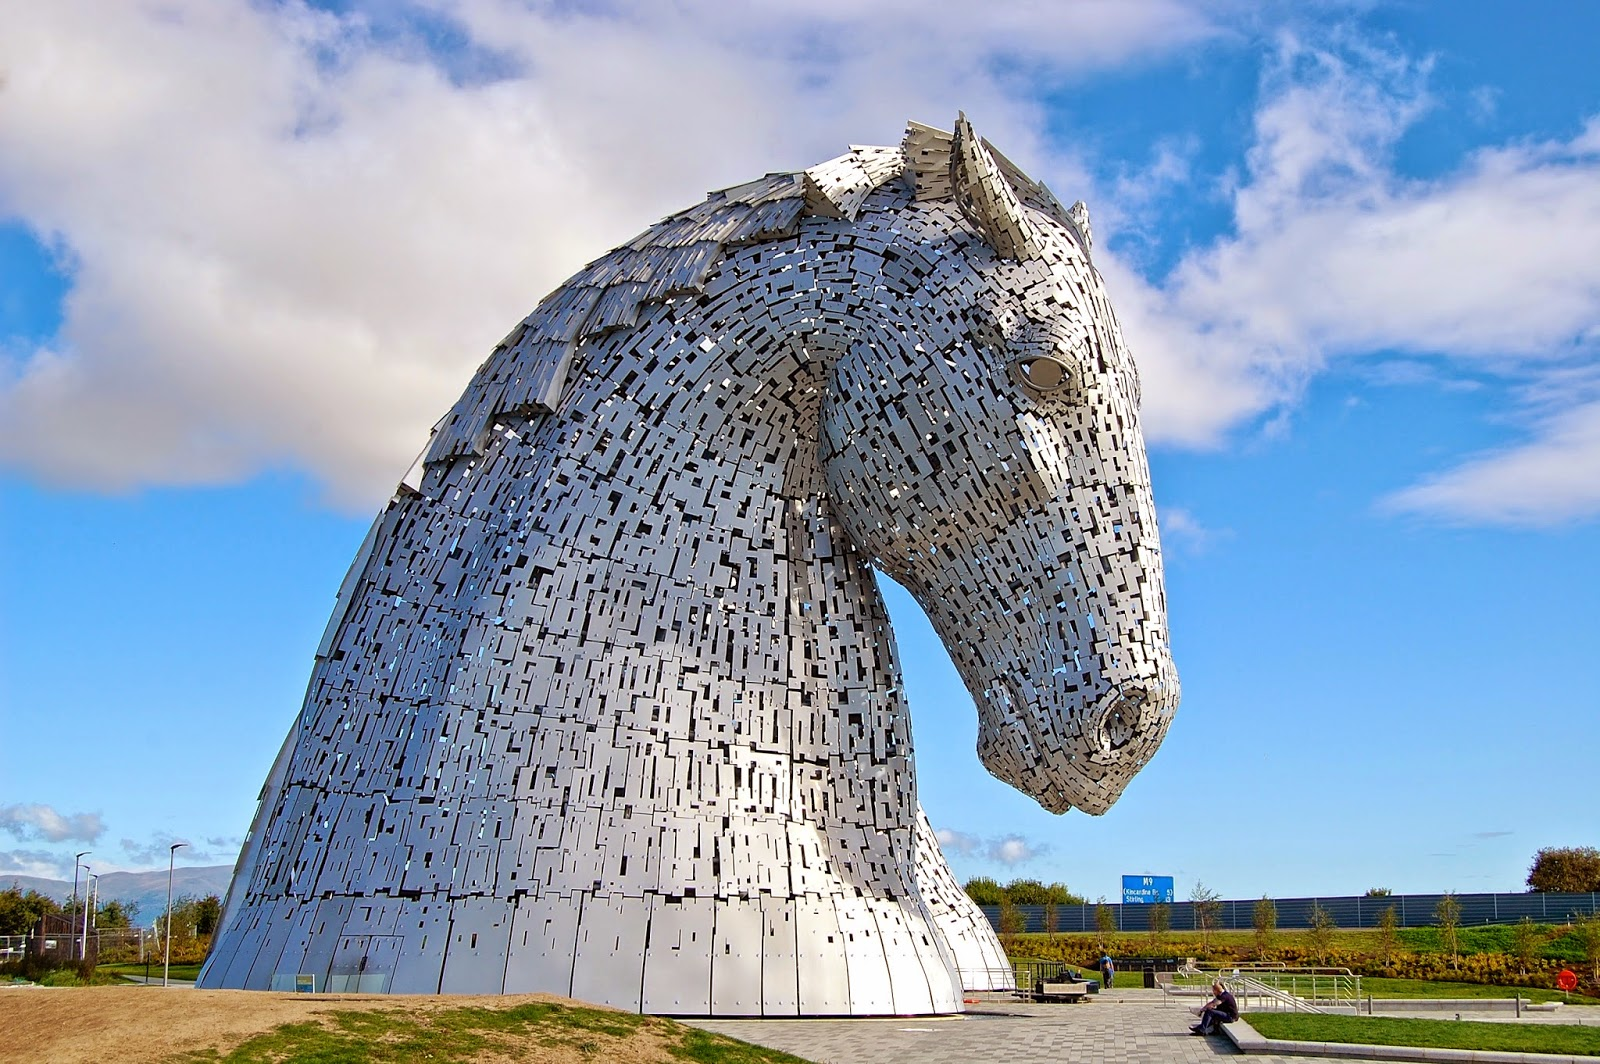 Kelpie with head down, Falkirk, Scotland